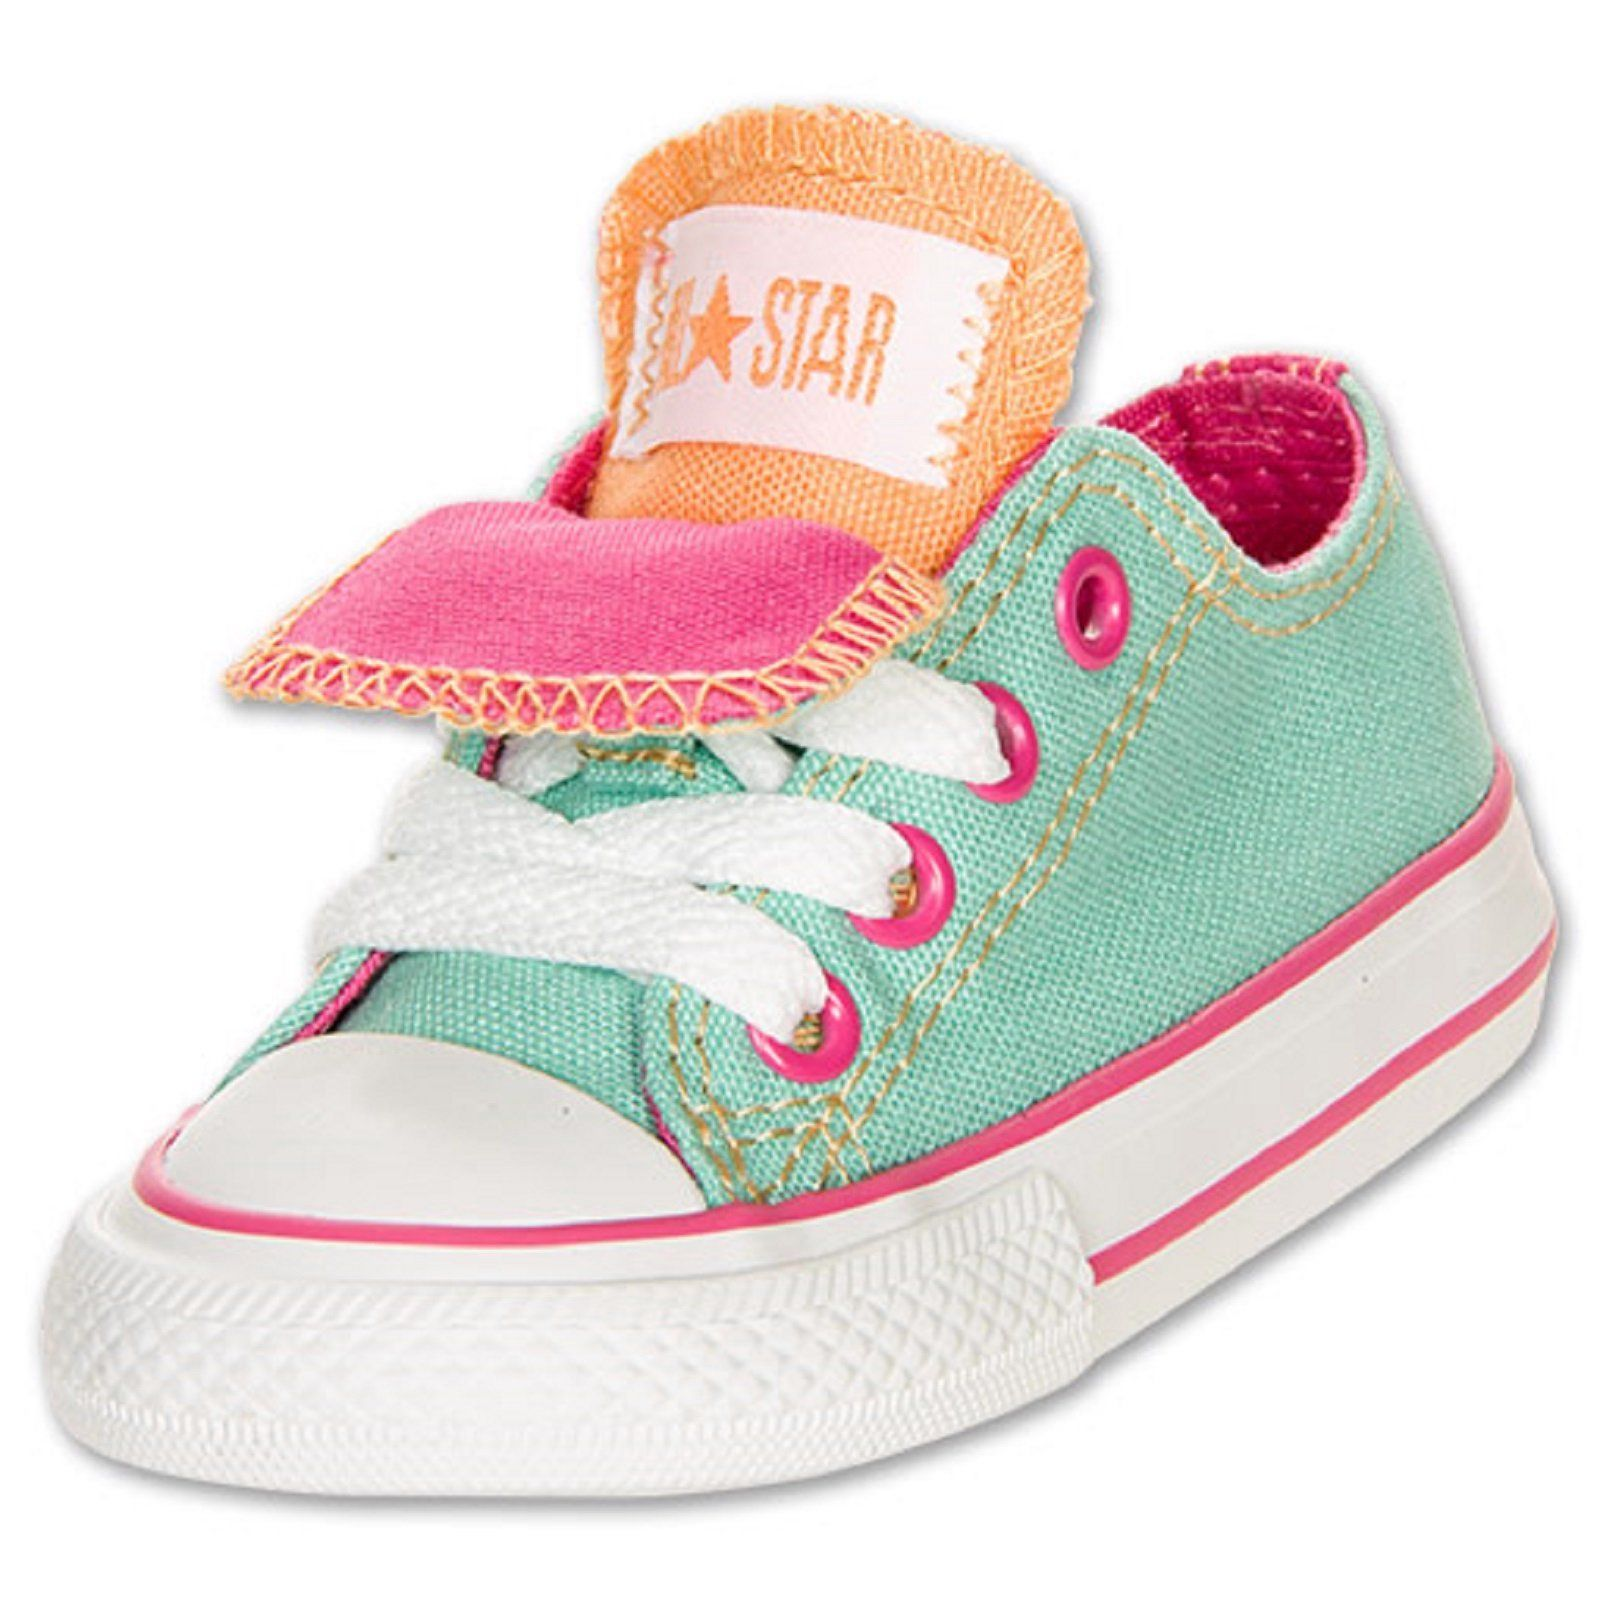 bb9c4349944e Baby Girls Shoes Converse Chuck Taylor Double Tongue Ox Toddler Sizes Aqua  Pink